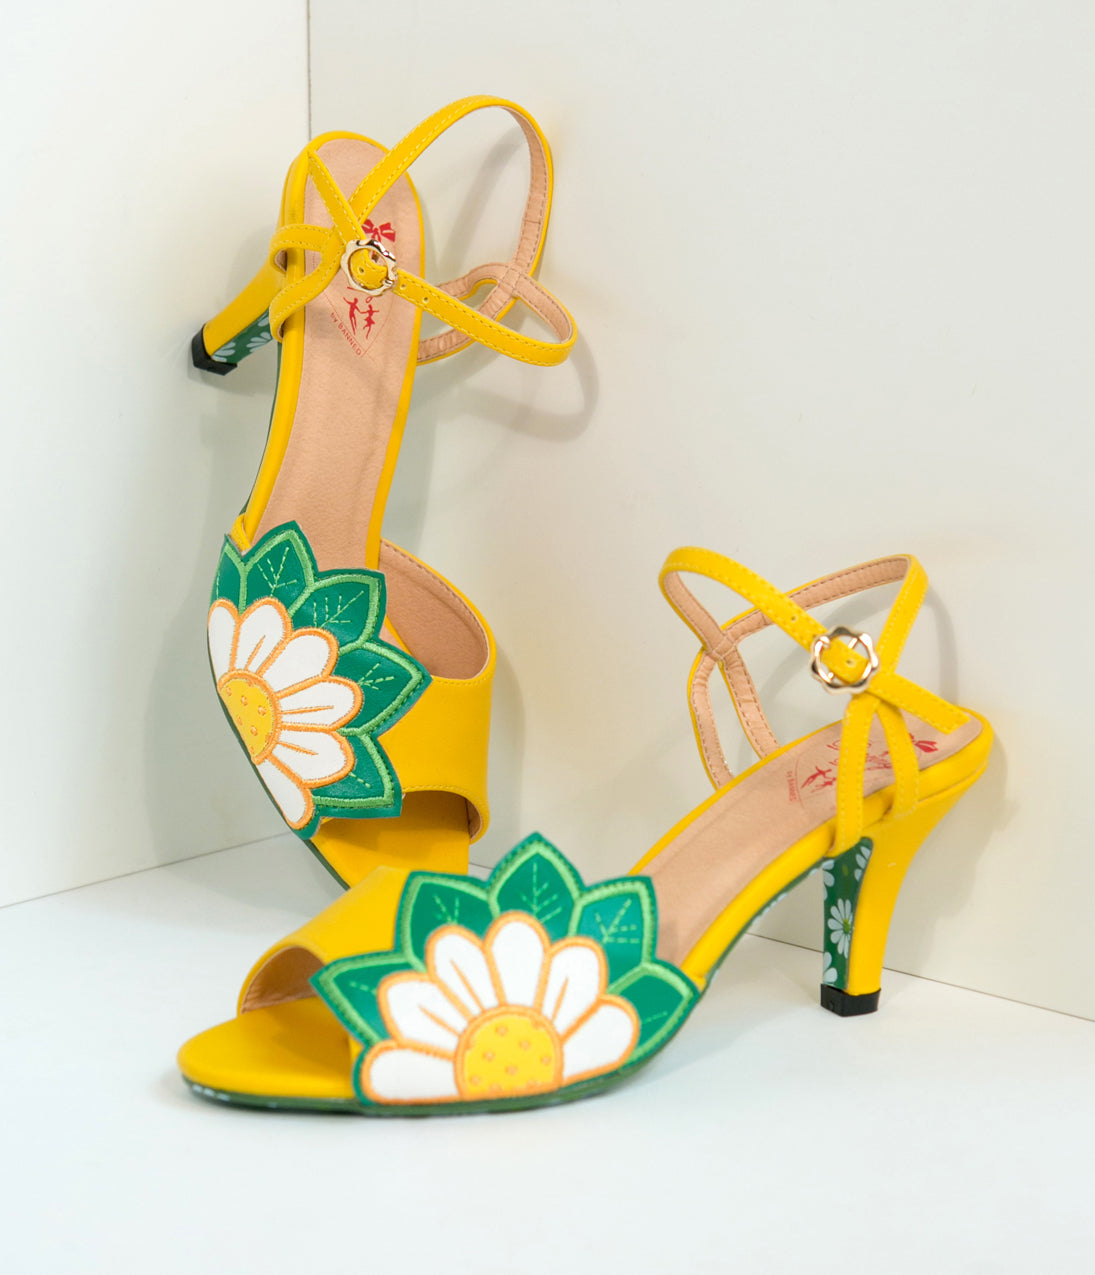 1950s Style Shoes Banned Yellow Daisy Floral Leatherette Peep Toe Heels $66.00 AT vintagedancer.com